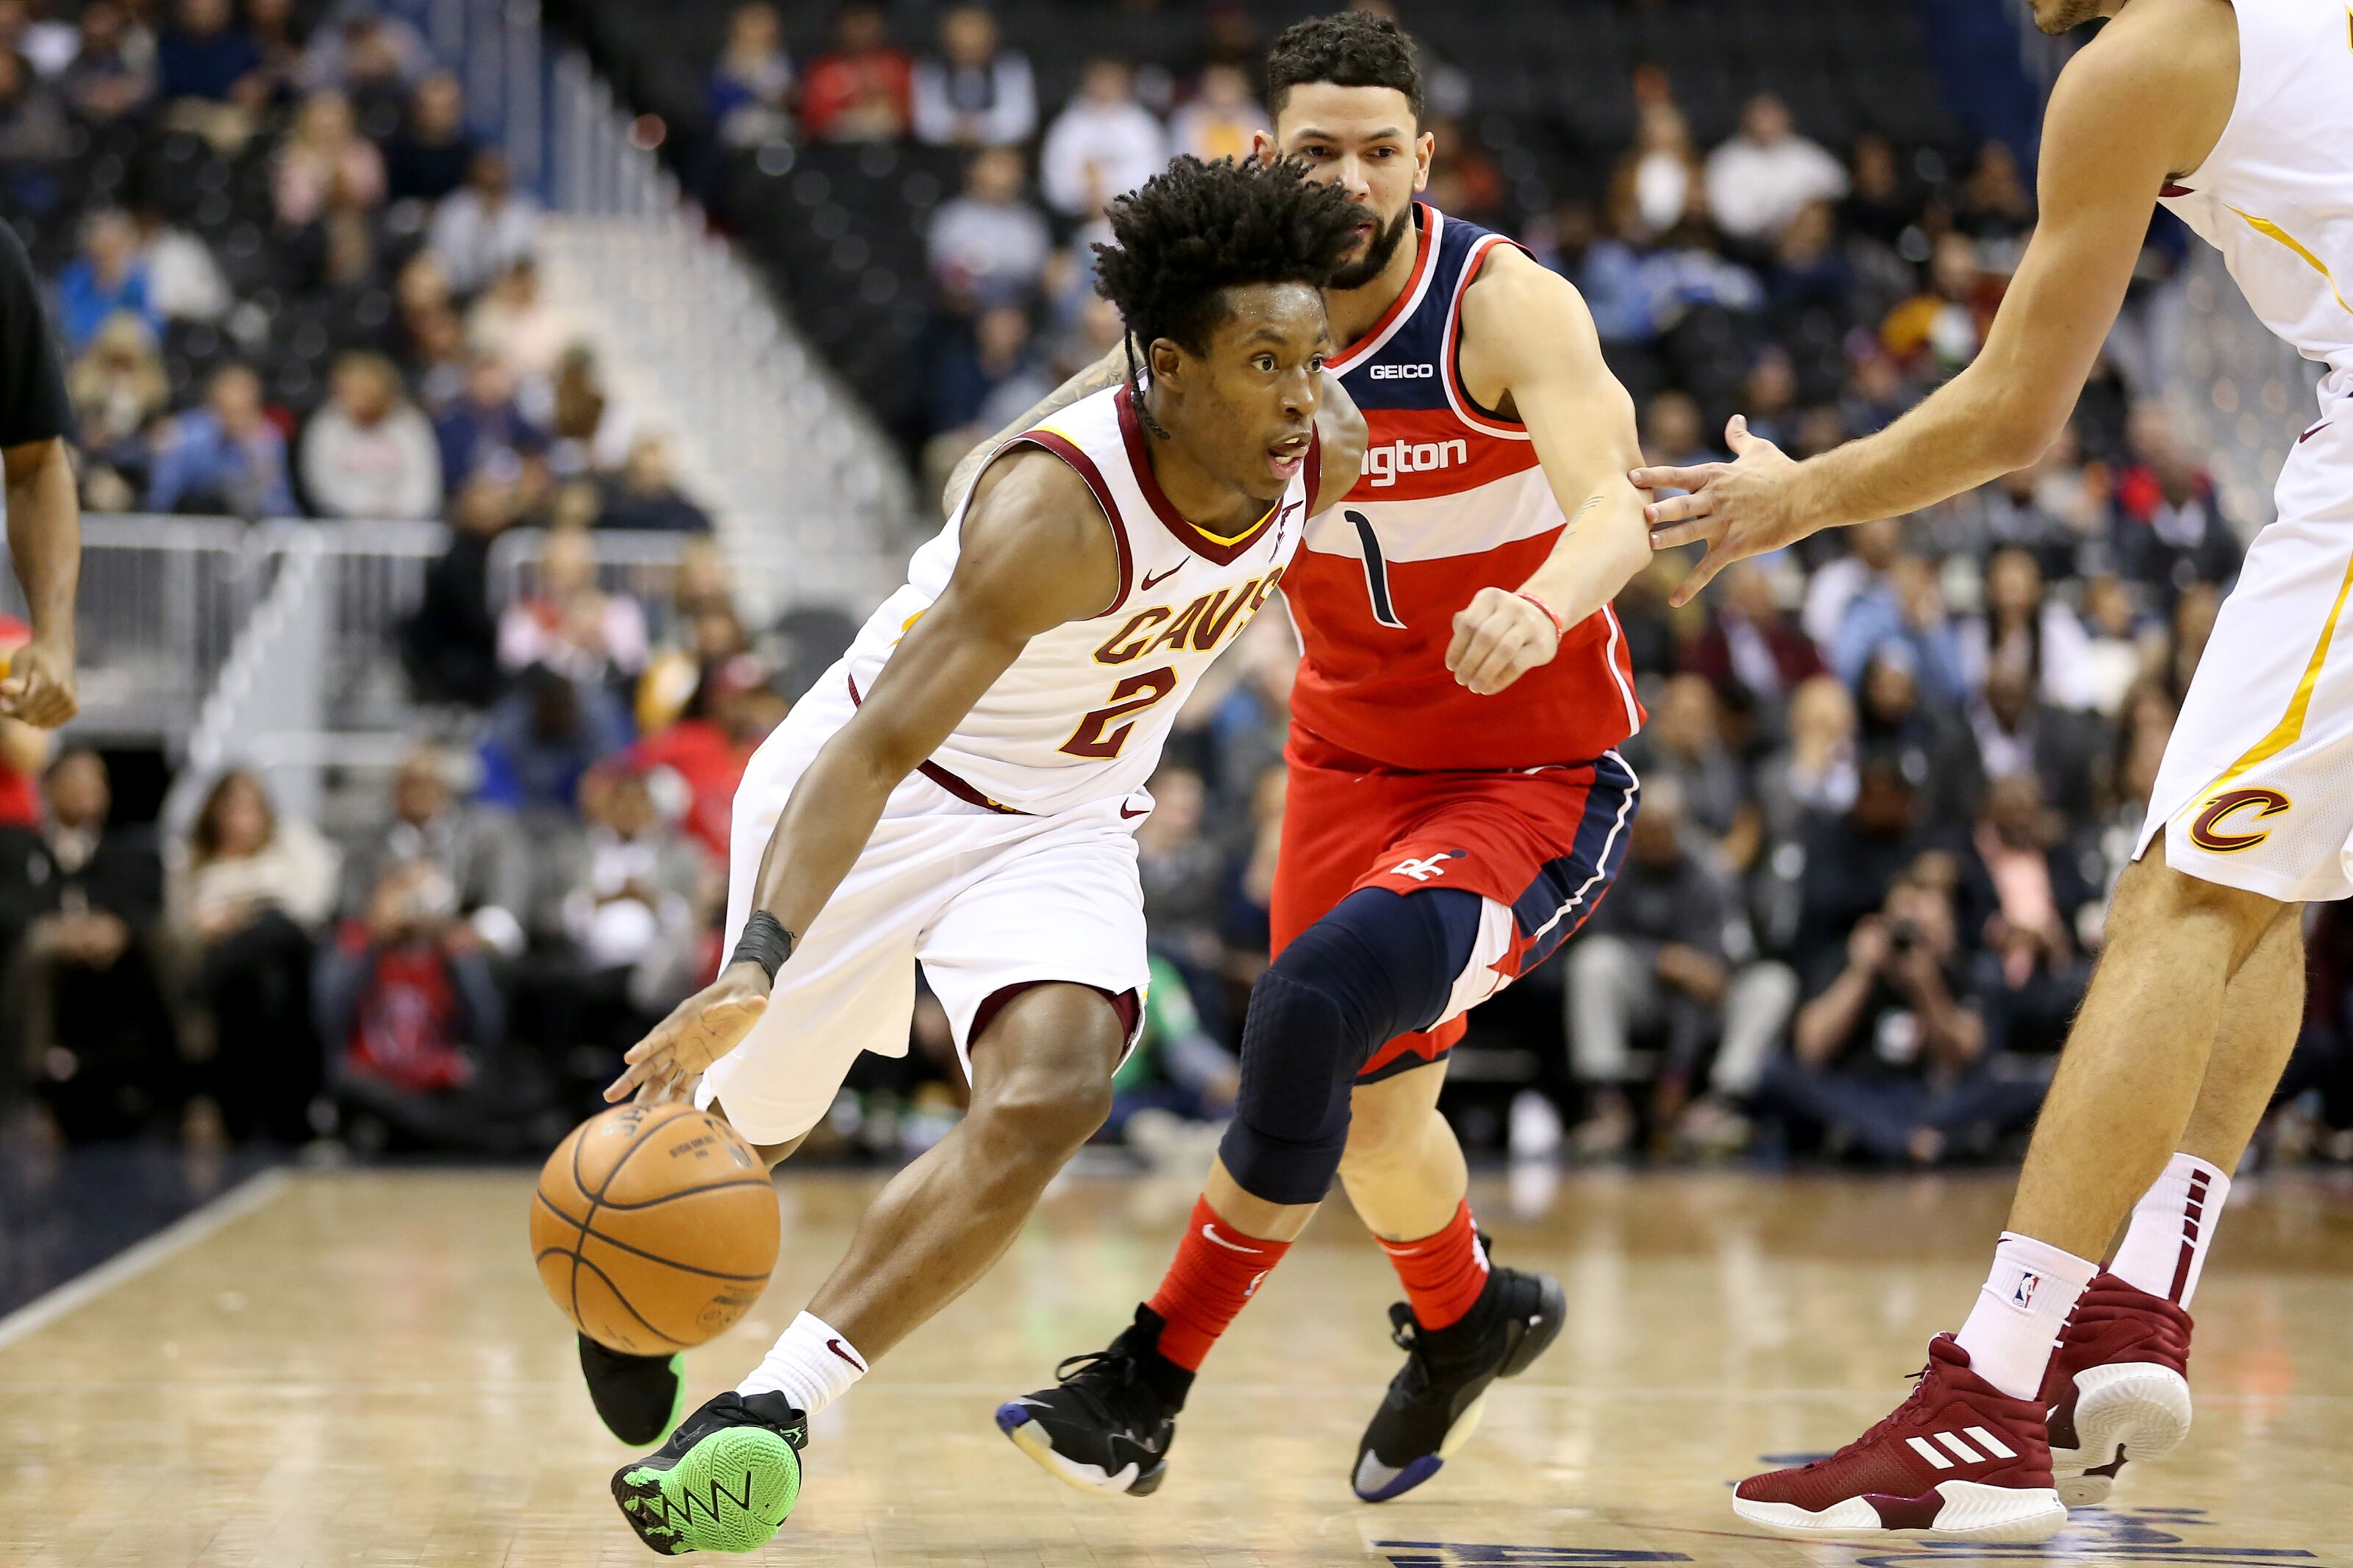 Cleveland Cavaliers: Sexton, Nwaba provide bright spots in loss to Wizards